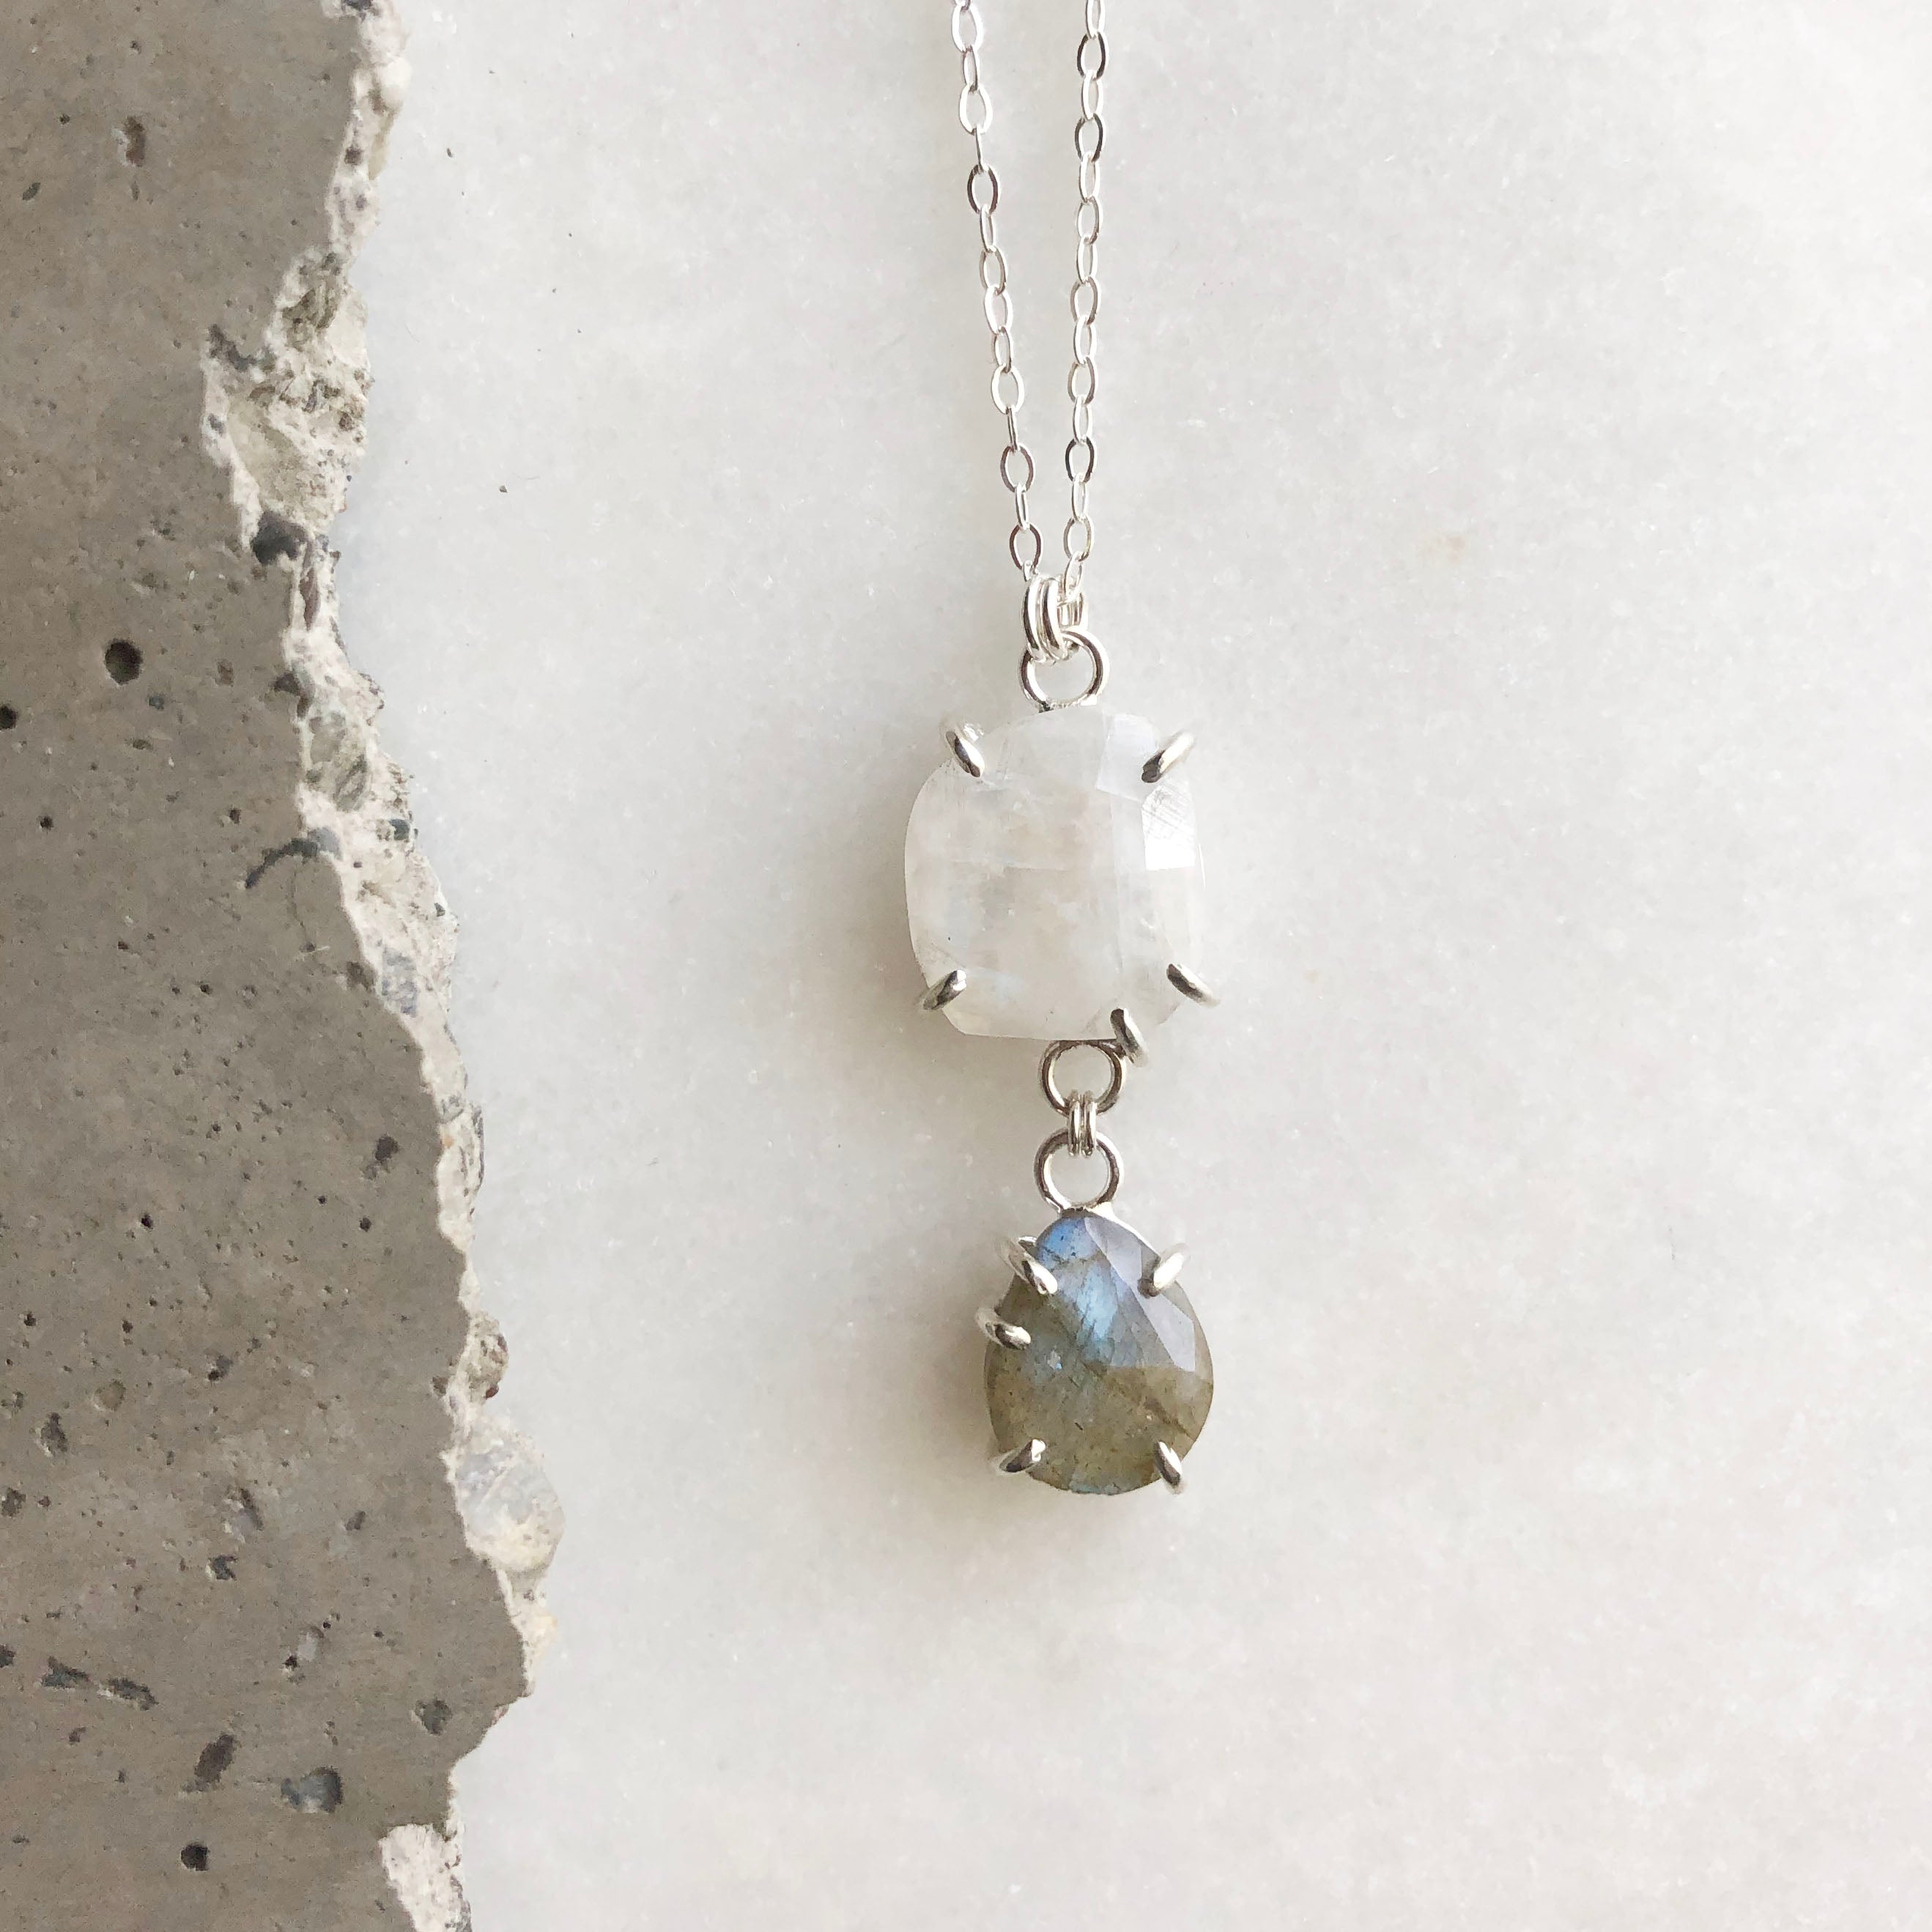 Moonstone and Labradorite Necklace by Rockhaus Metals